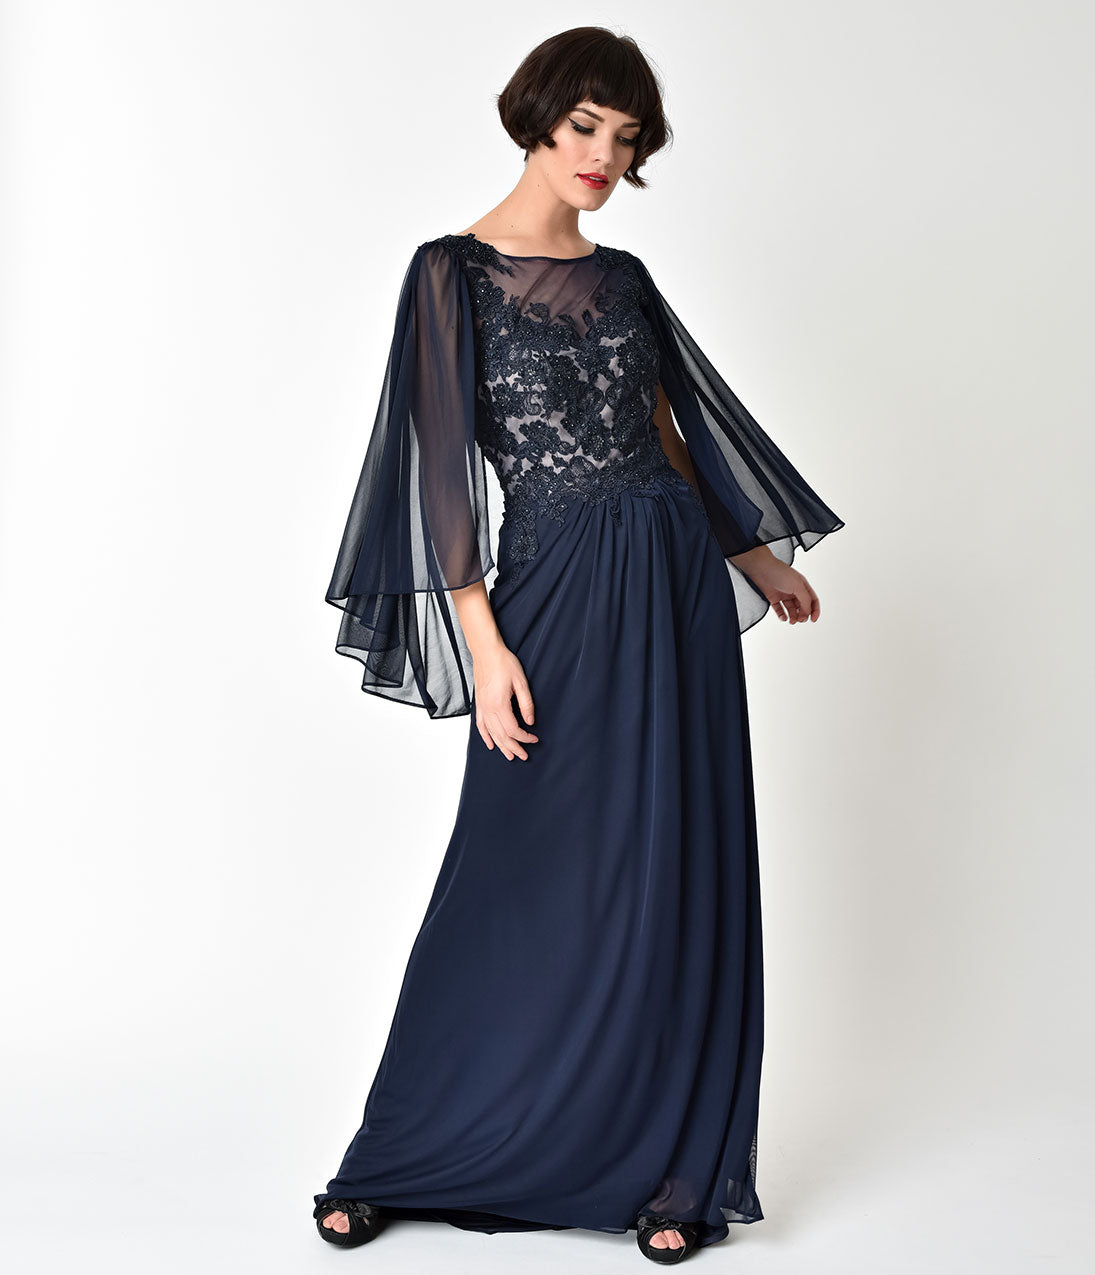 1940s Evening, Prom, Party, Cocktail Dresses & Ball Gowns Navy Blue Embellished Mesh Sleeved Cape Gown $238.00 AT vintagedancer.com